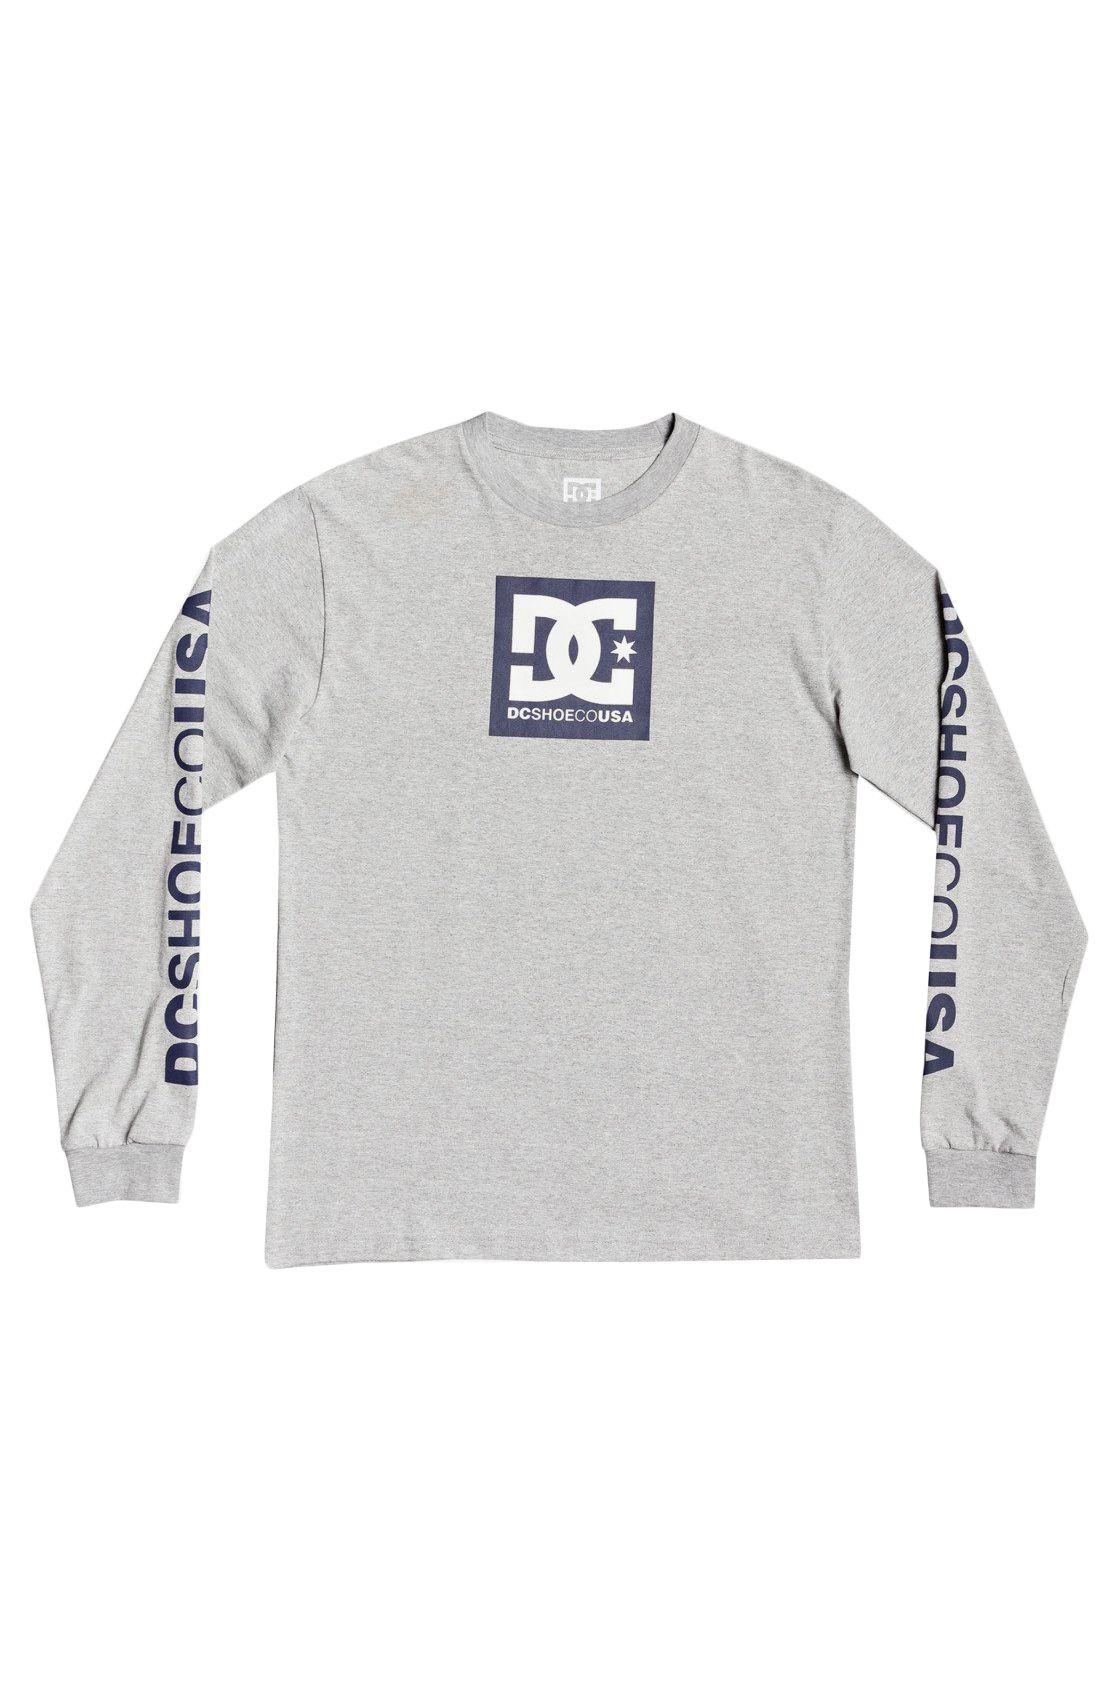 DC Shoes L-Sleeve SQUARE STAR LS BOY Heather Grey